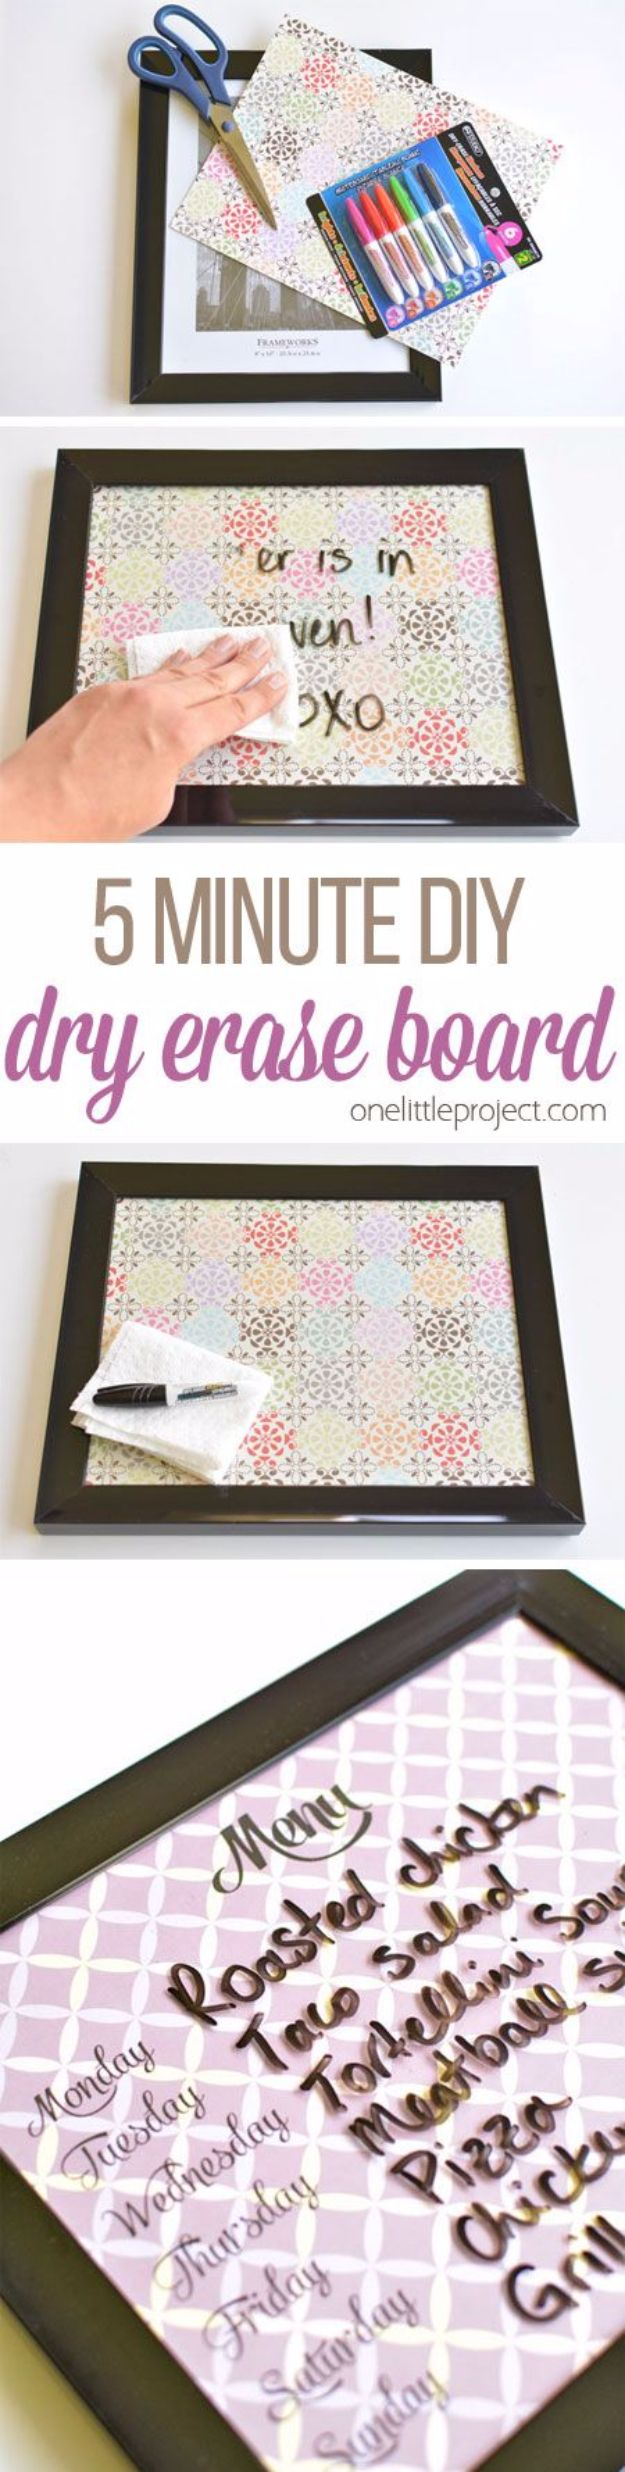 Crafts for Teens to Make and Sell - 5 Minute Dry Erase Board - Cheap and Easy DIY Ideas To Make For Extra Money - Best Things to Sell On Etsy, Dollar Store Craft Ideas, Quick Projects for Teenagers To Make Spending Cash - DIY Gifts, Wall Art, School Supplies, Room Decor, Jewelry, Fashion, Hair Accessories, Bracelets, Magnets http://diyprojectsforteens.com/crafts-to-sell-teens